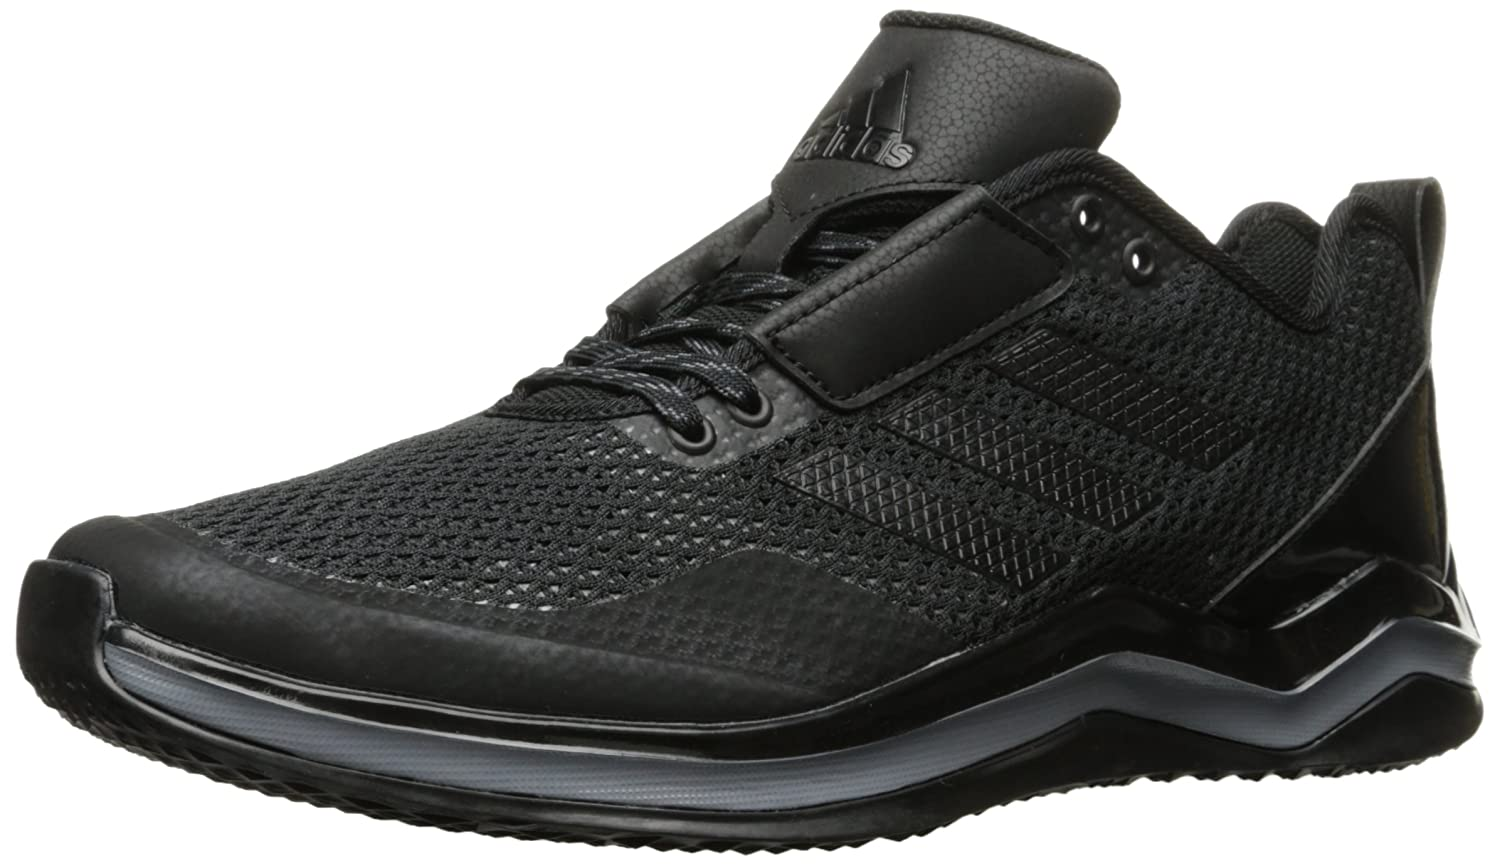 Cnoir Cnoir Ironmt Adidas Speed Trainer 3.0 Synthétique Baskets 37 1 3 EU